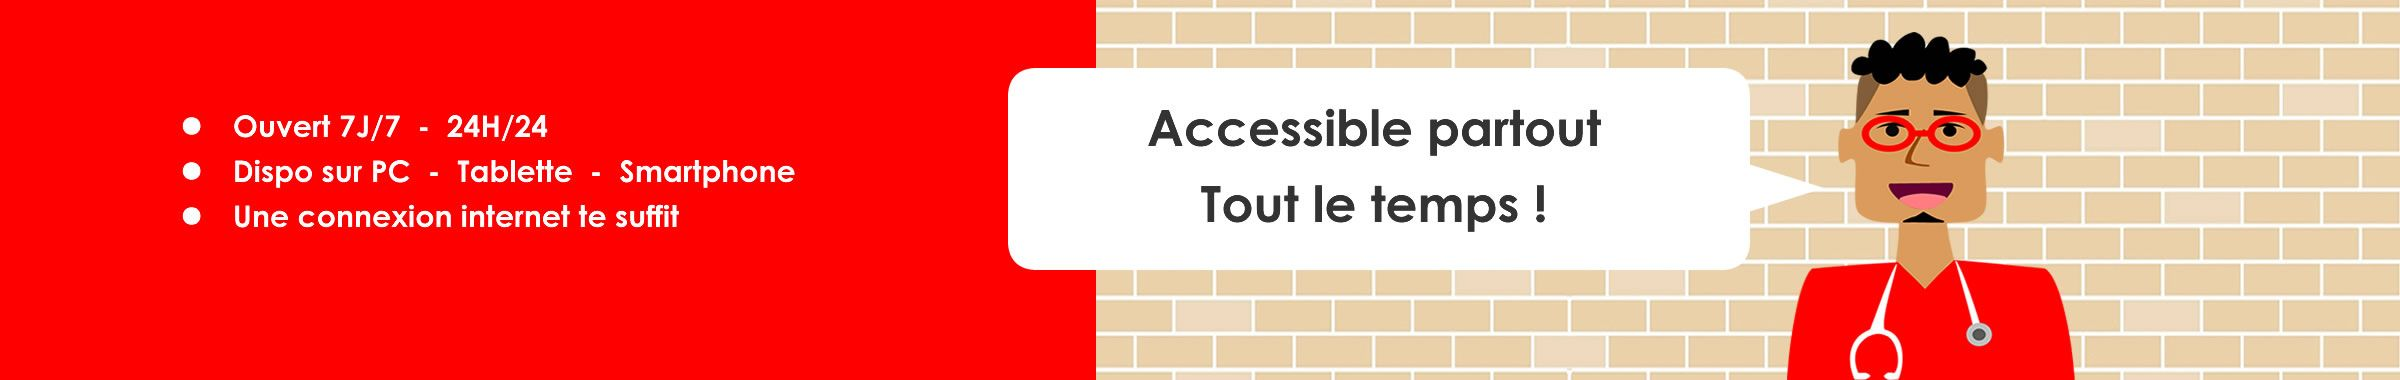 Prepamedic - Accessible 7J/7 - 24H/24 - PC,Tablette, Smartphone